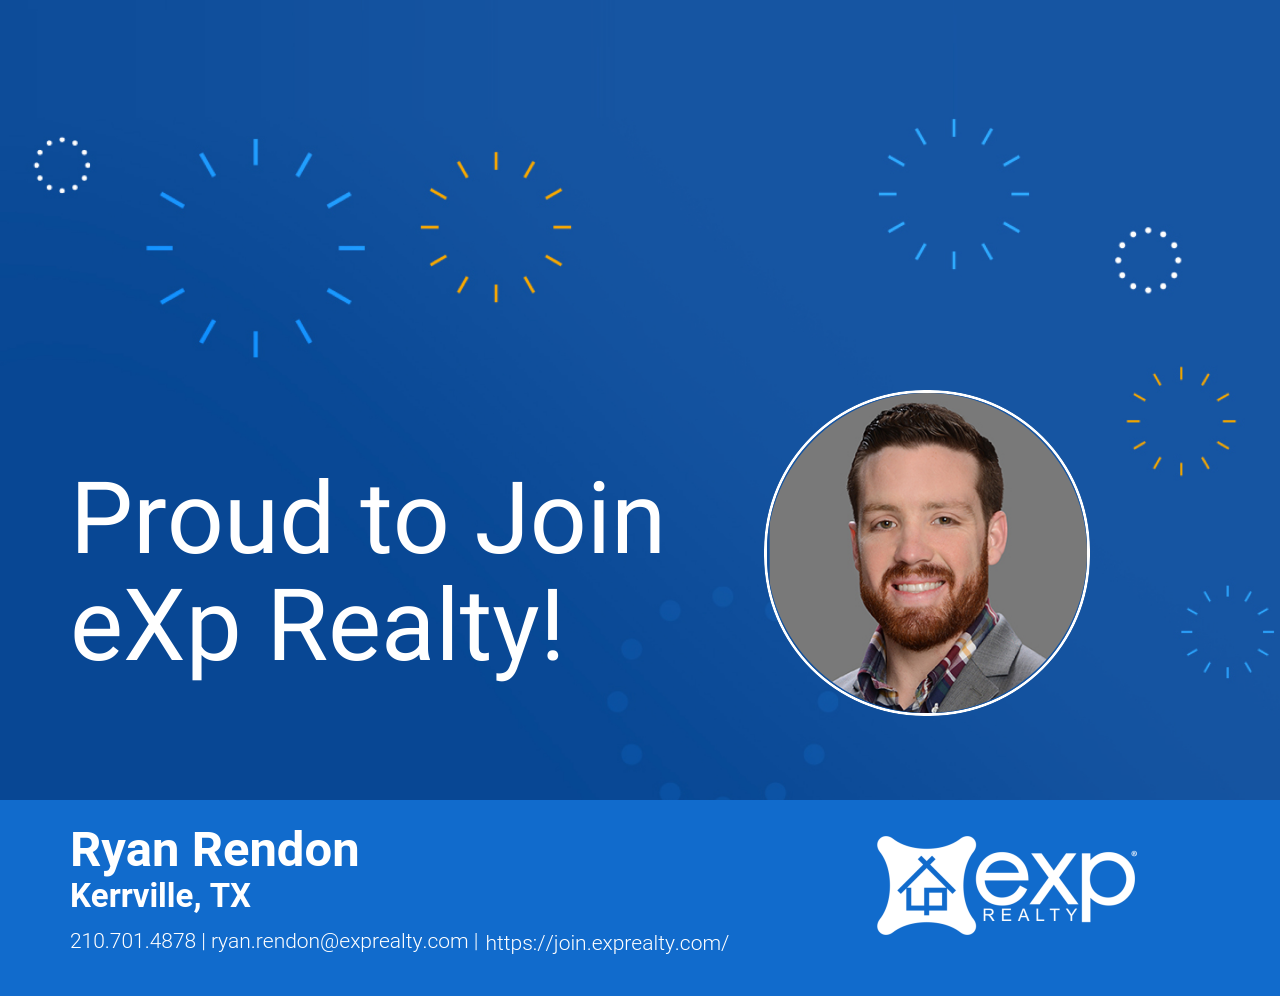 Ryan Rendon Joined eXp Realty!